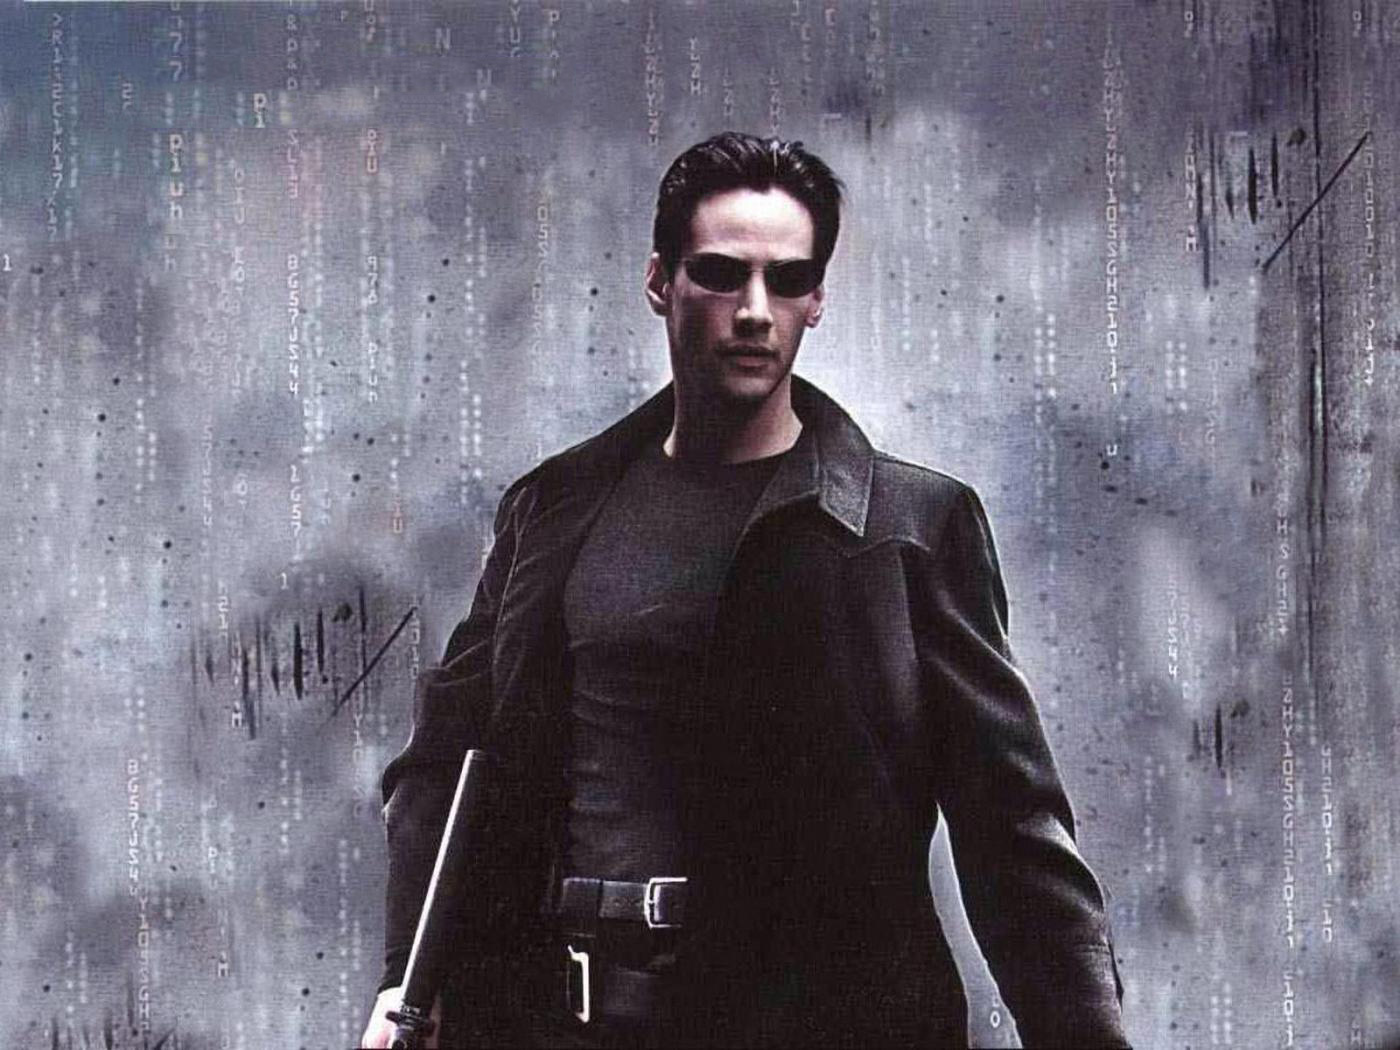 Keanu-Reeves_the_matrix_58141-O